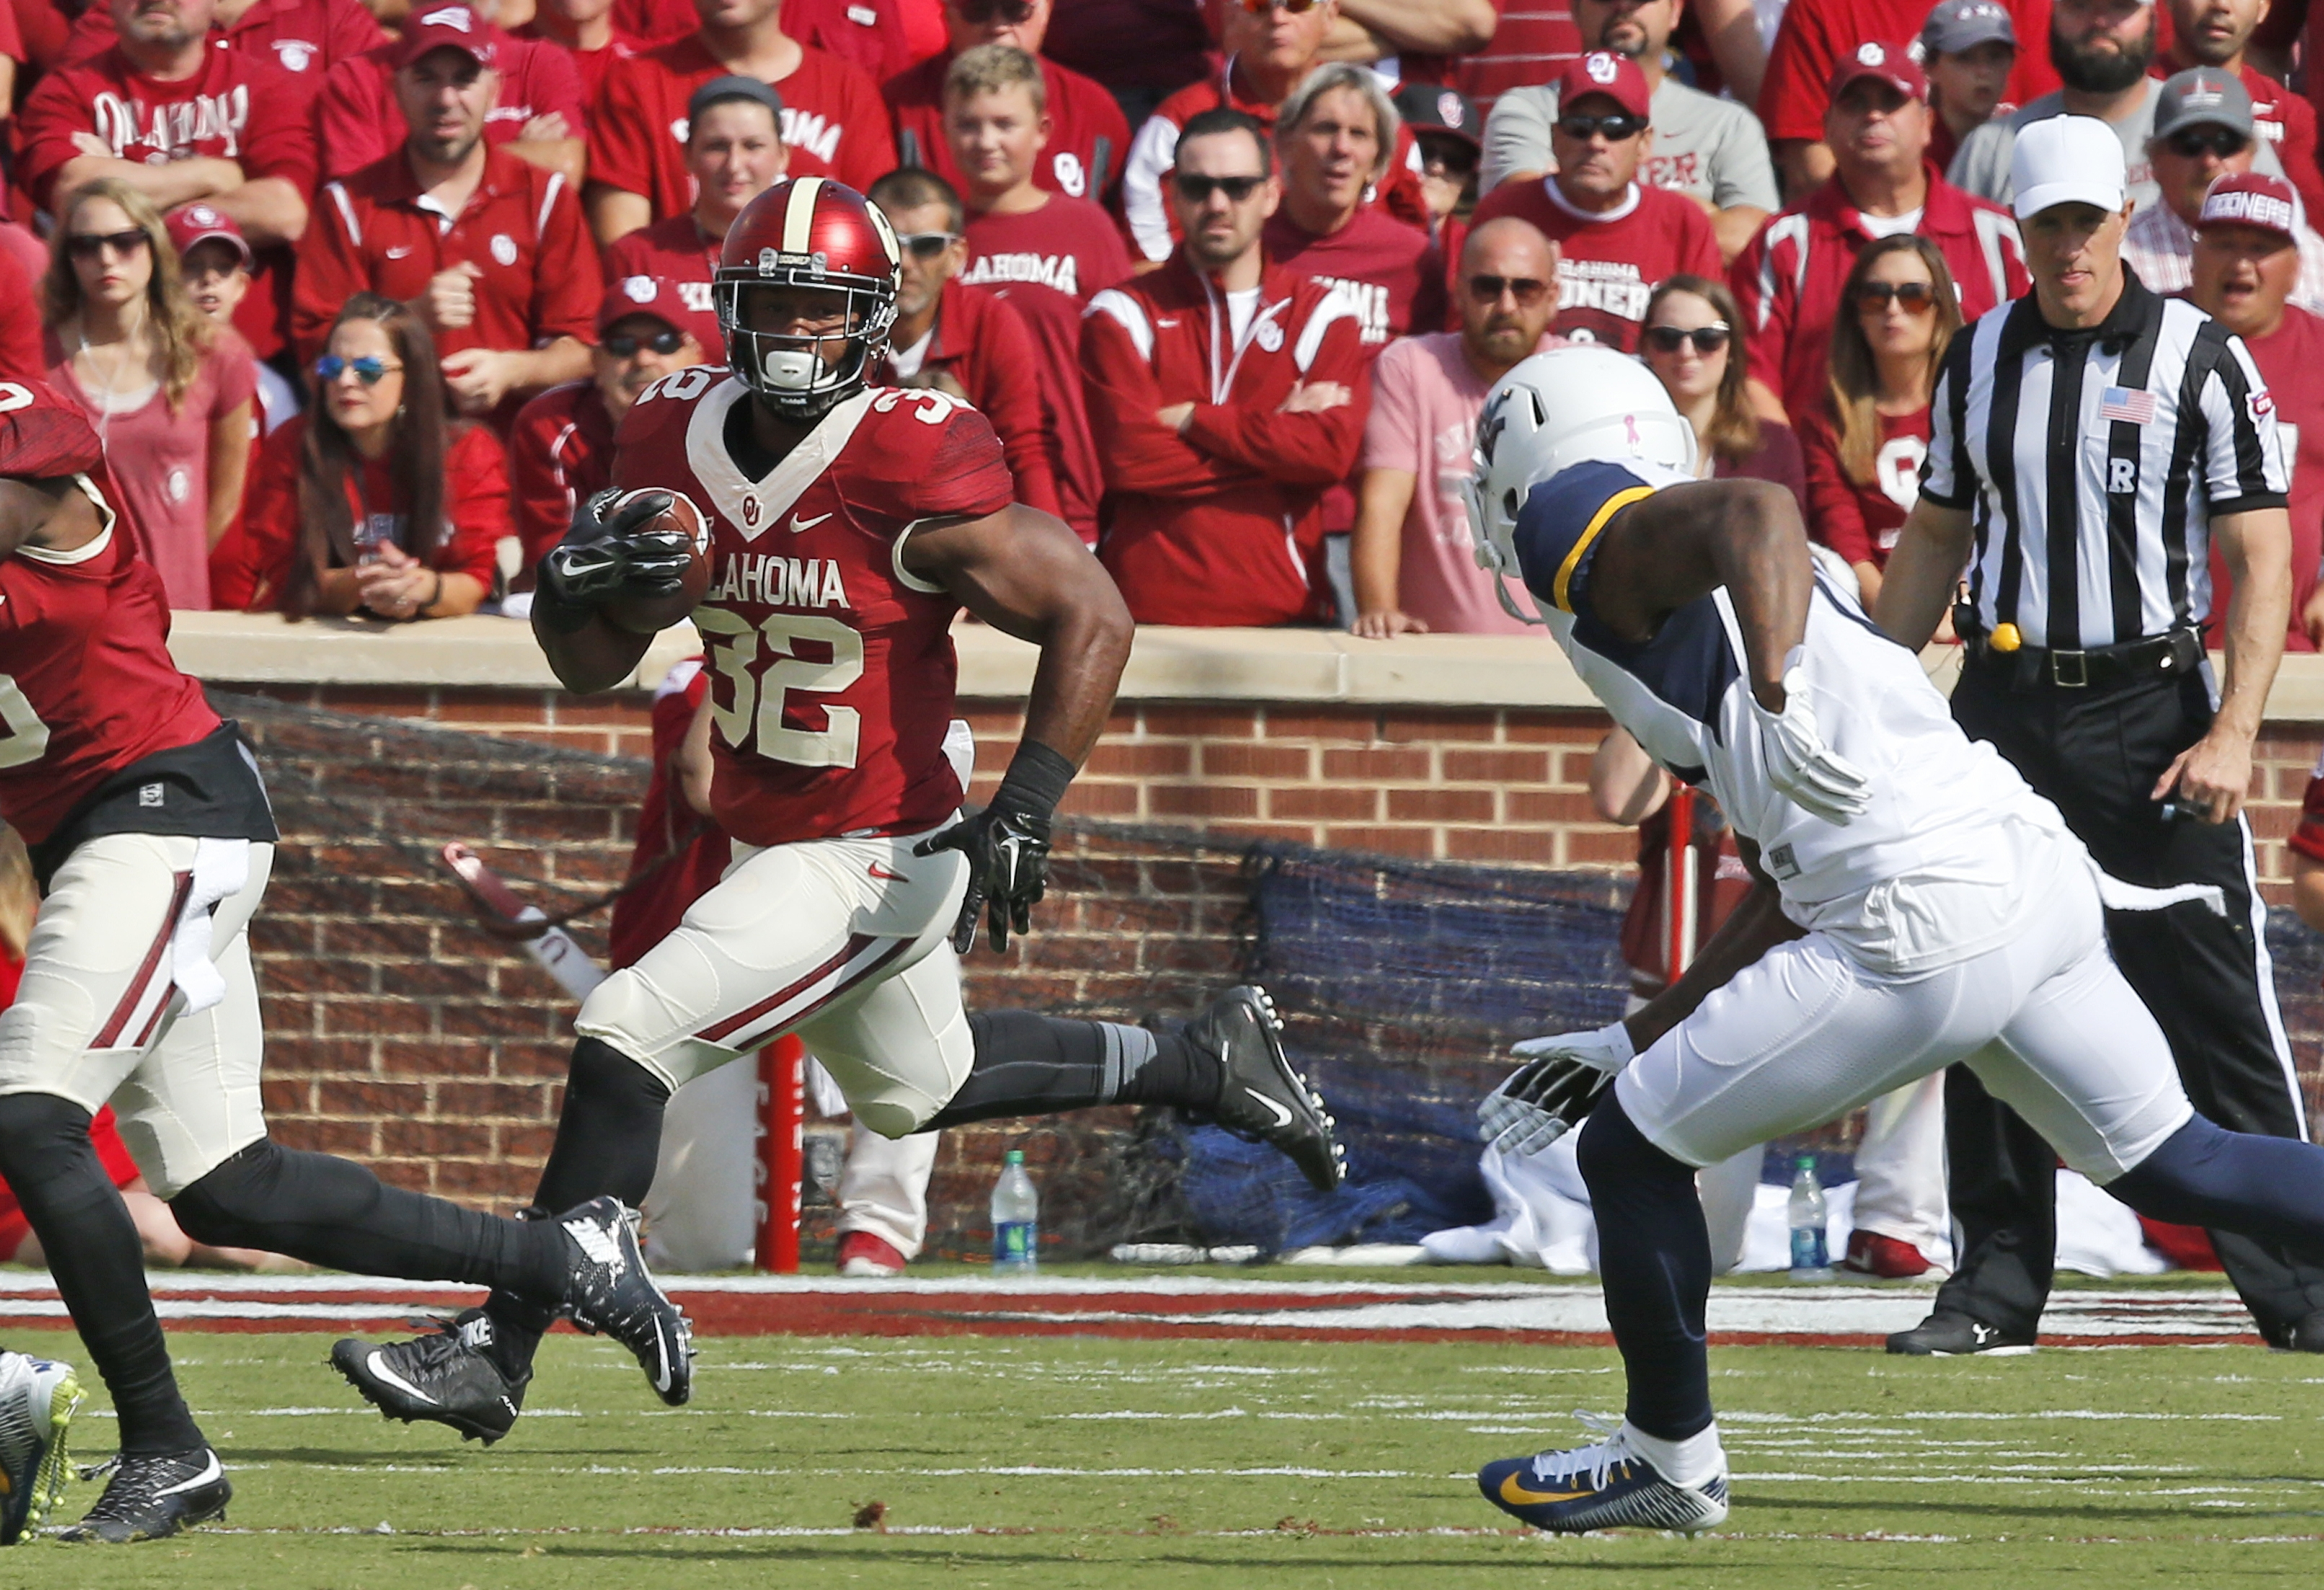 FILE - In this Oct. 3, 2015, file photo, Oklahoma running back Samaje Perine (32) carries against West Virginia during an NCAA college football game in Norman, Okla. Nearly half his yards have come in the fourth quarter, when the 230-pound bruiser can pun